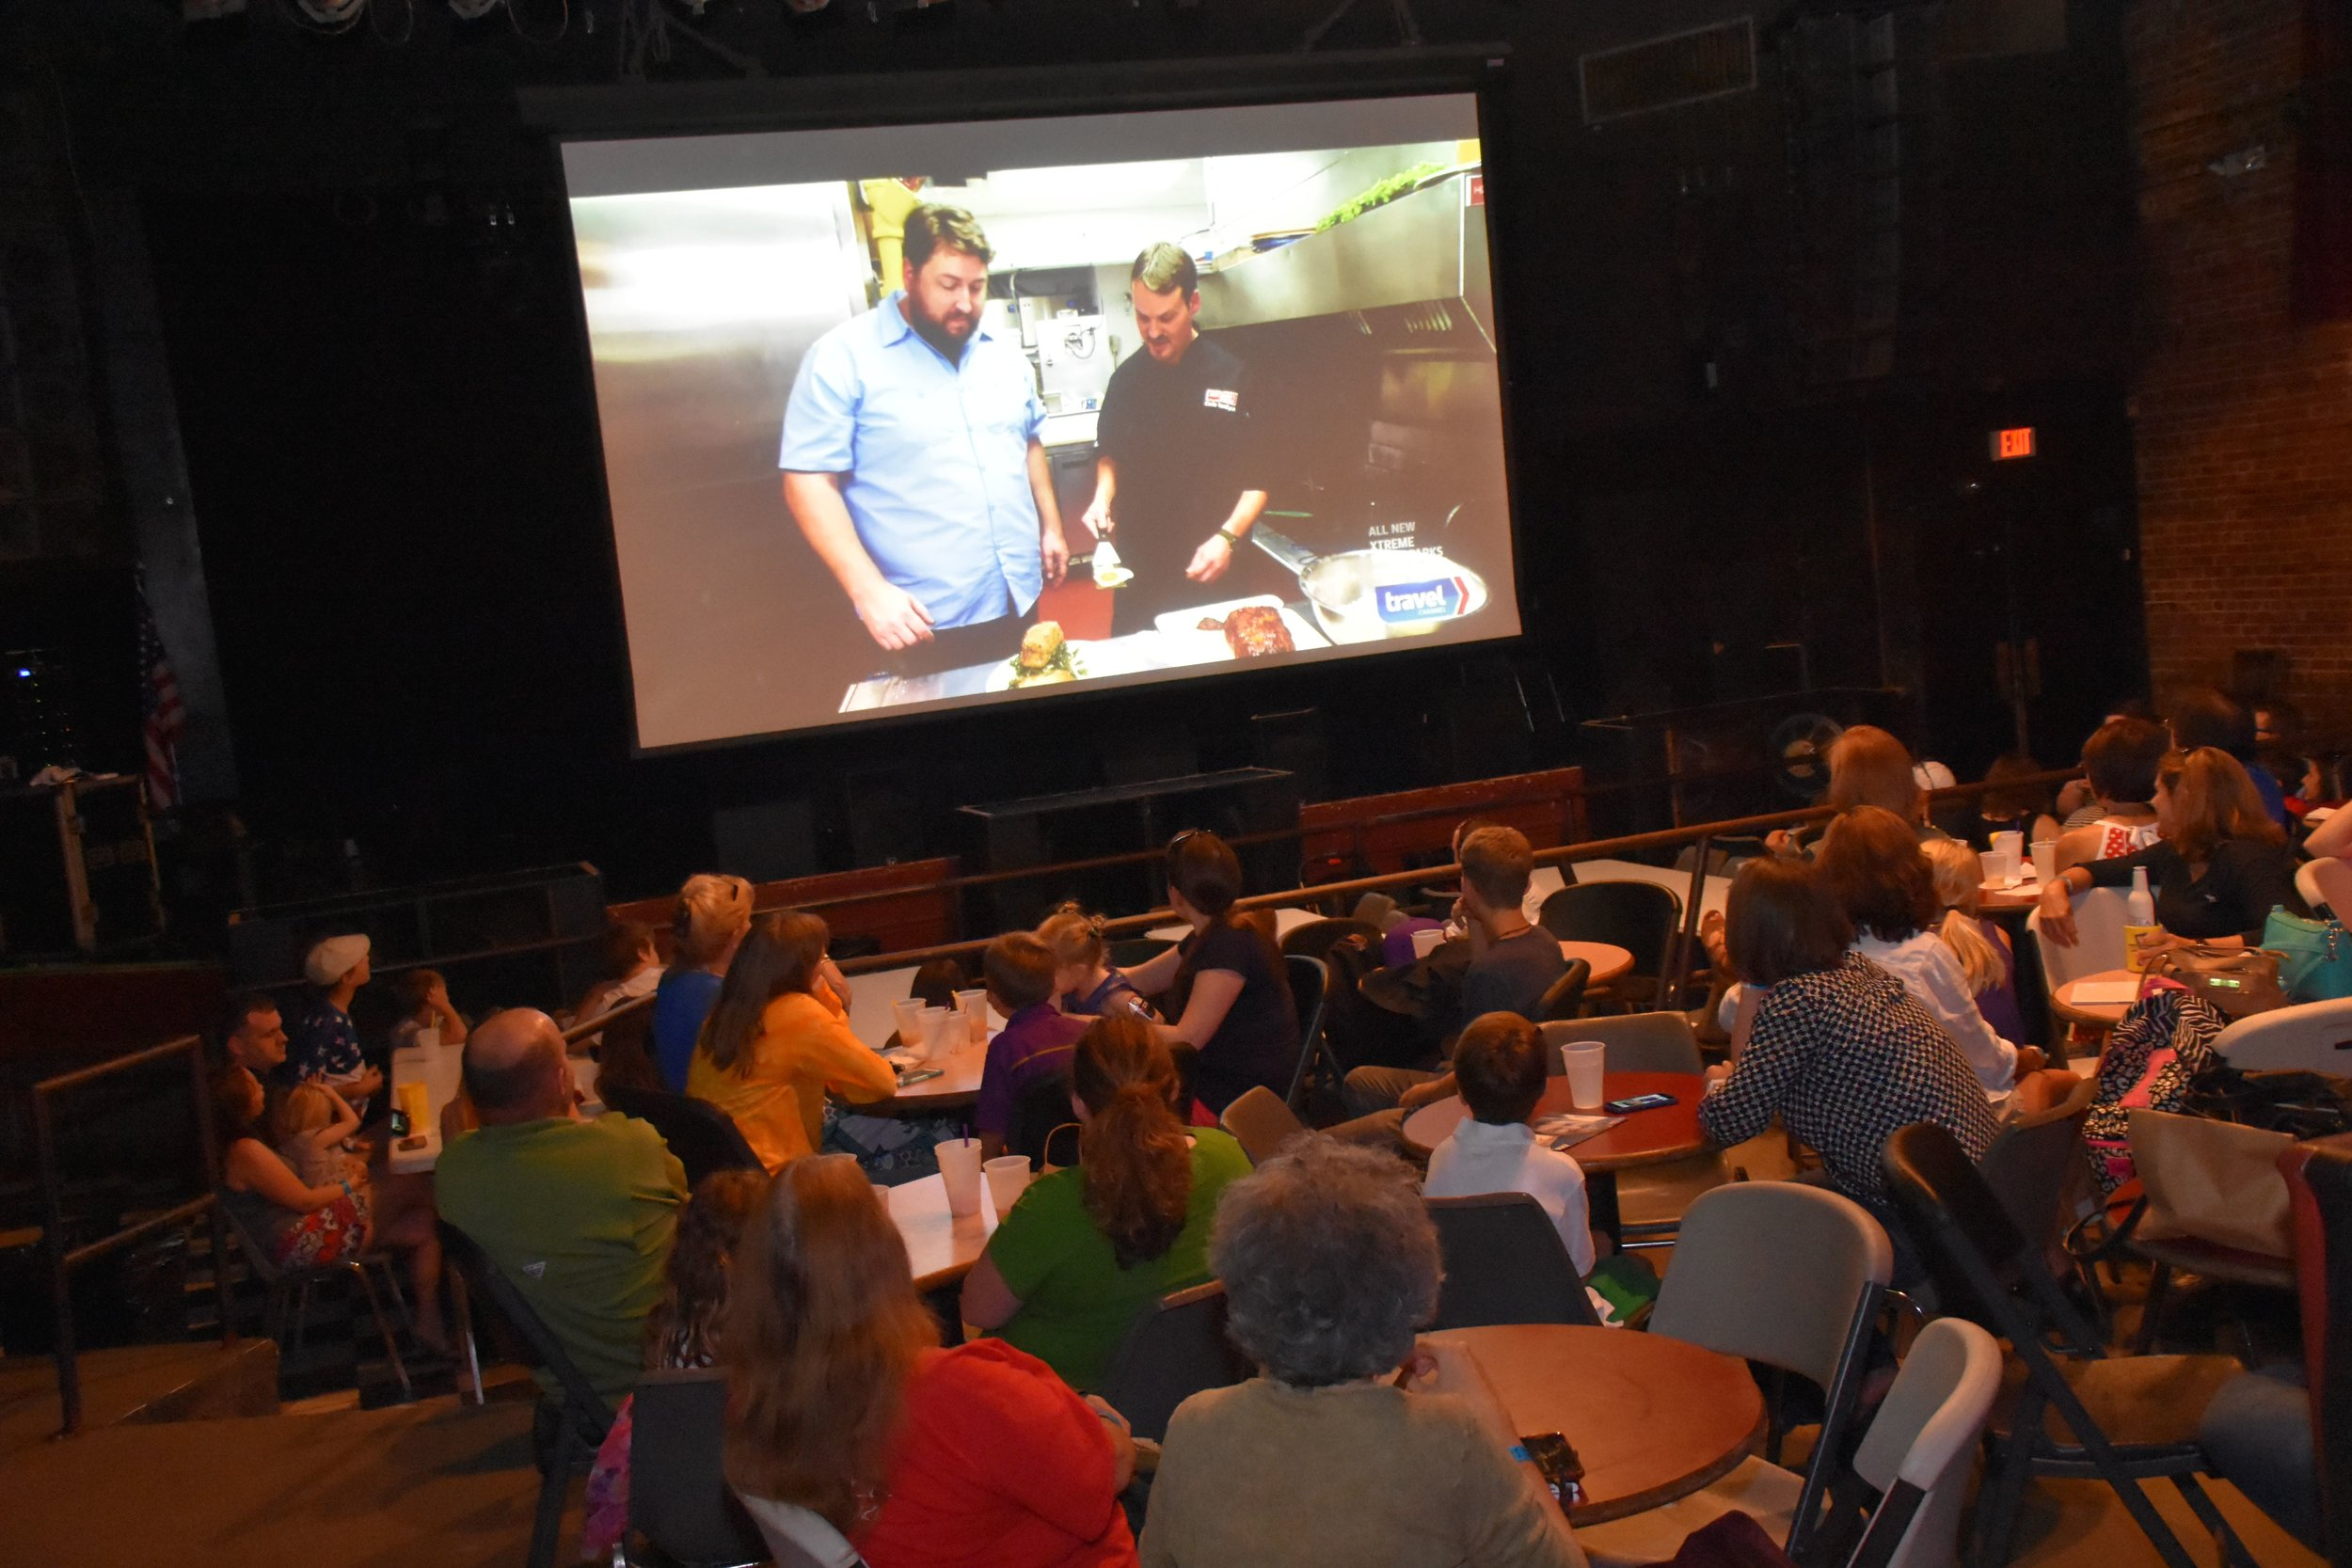 Jay Ducote pilot for Deep Fried America airs on Travel Channel. The viewing party was held at The Varsity in Baton Rouge.